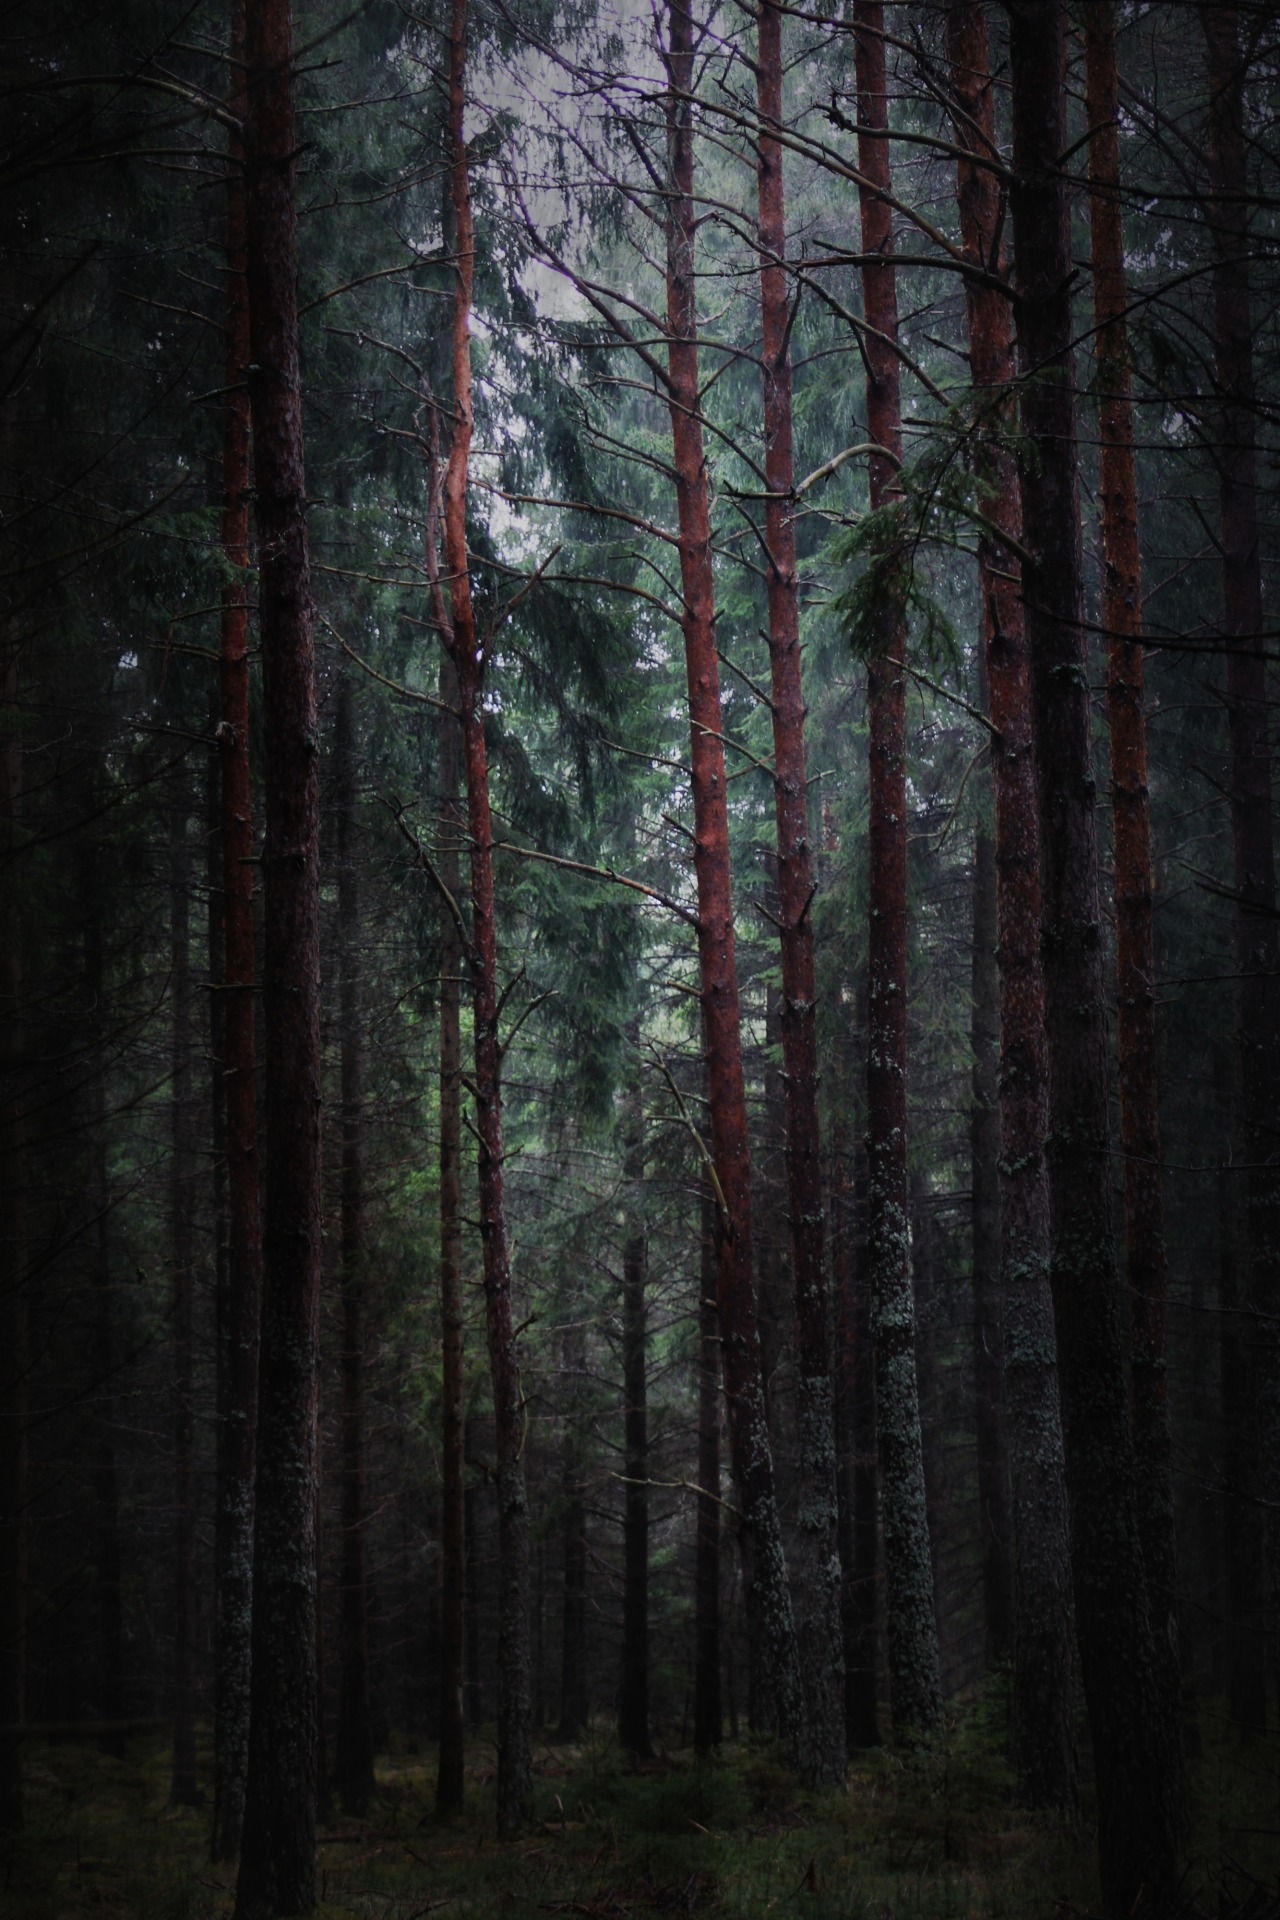 heathenharnow:  Där långa skuggor ruva, Part II XXIII© Heathen Harnow - please do not remove credit